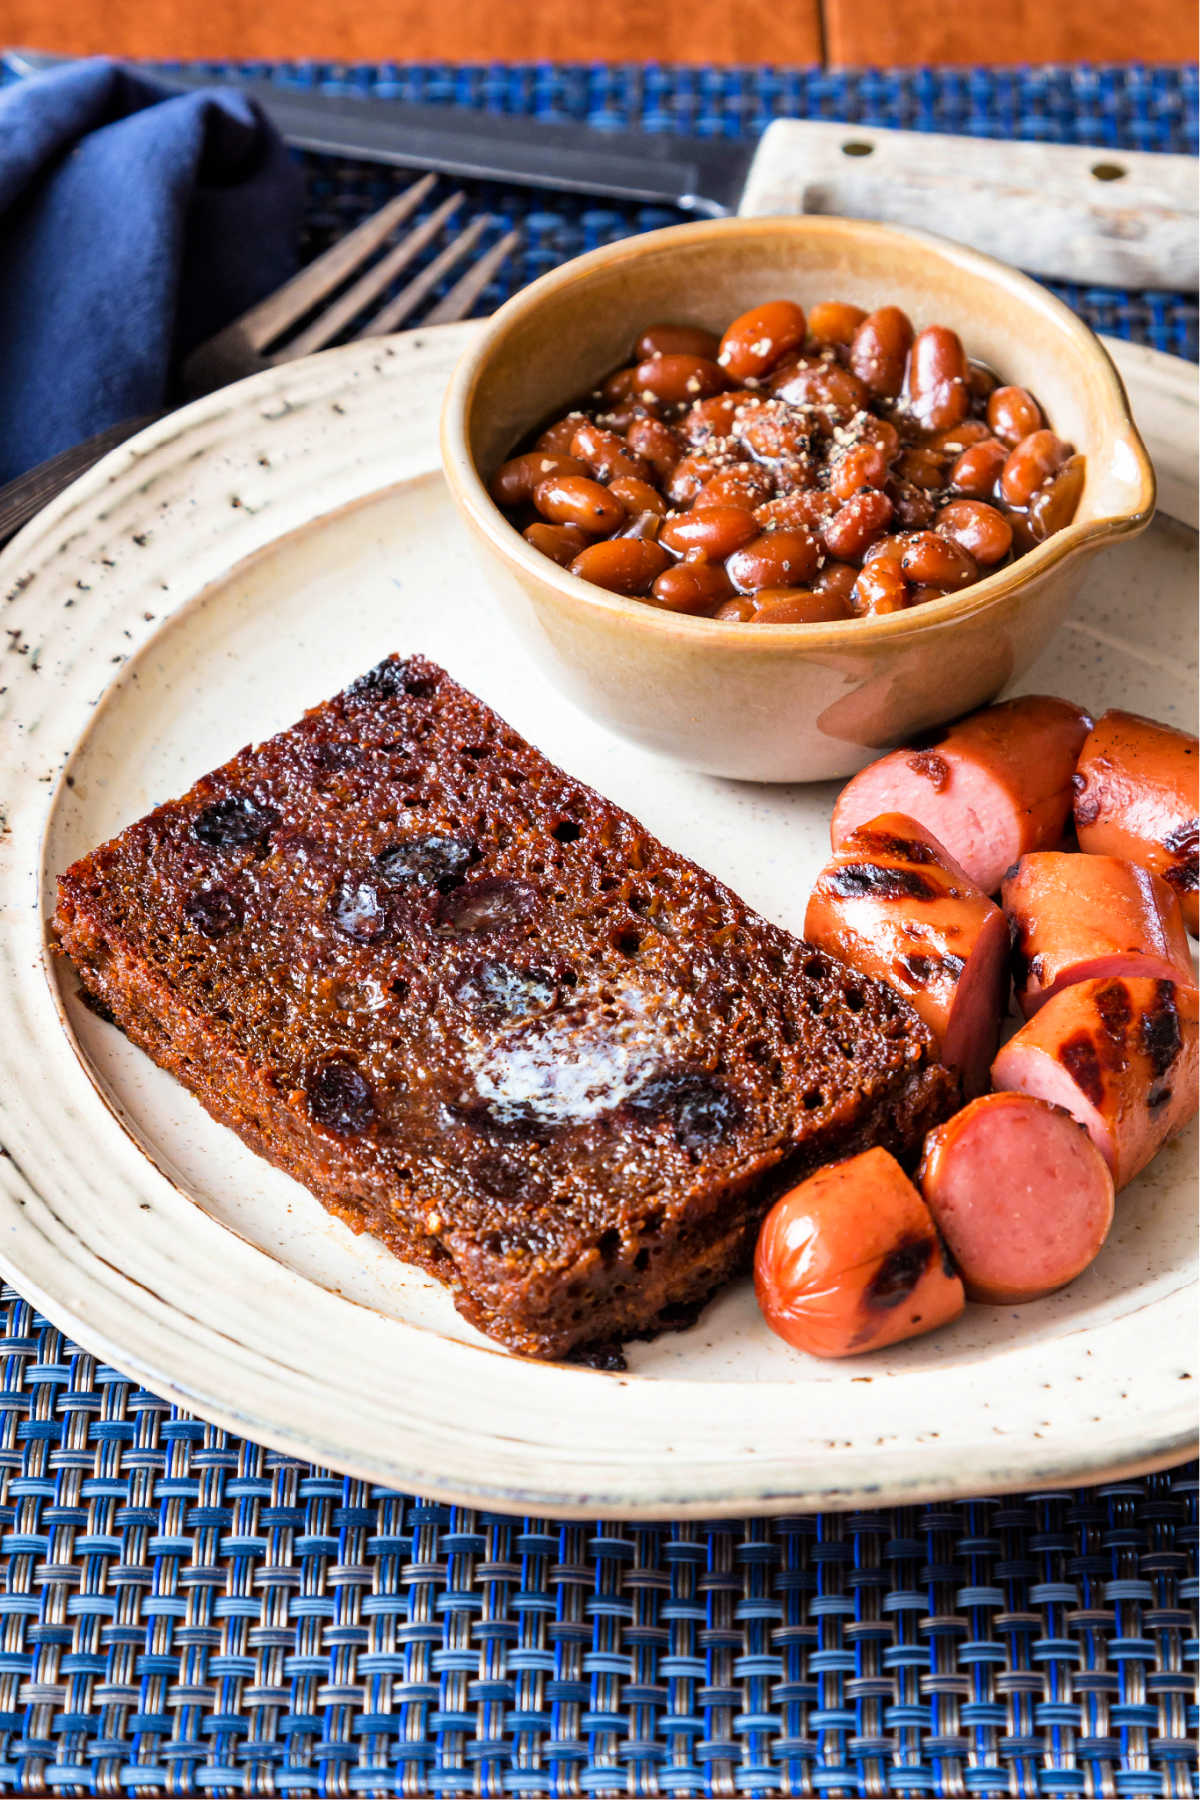 a slice of butter-fried Boston brown bread, franks, and beans on a plate